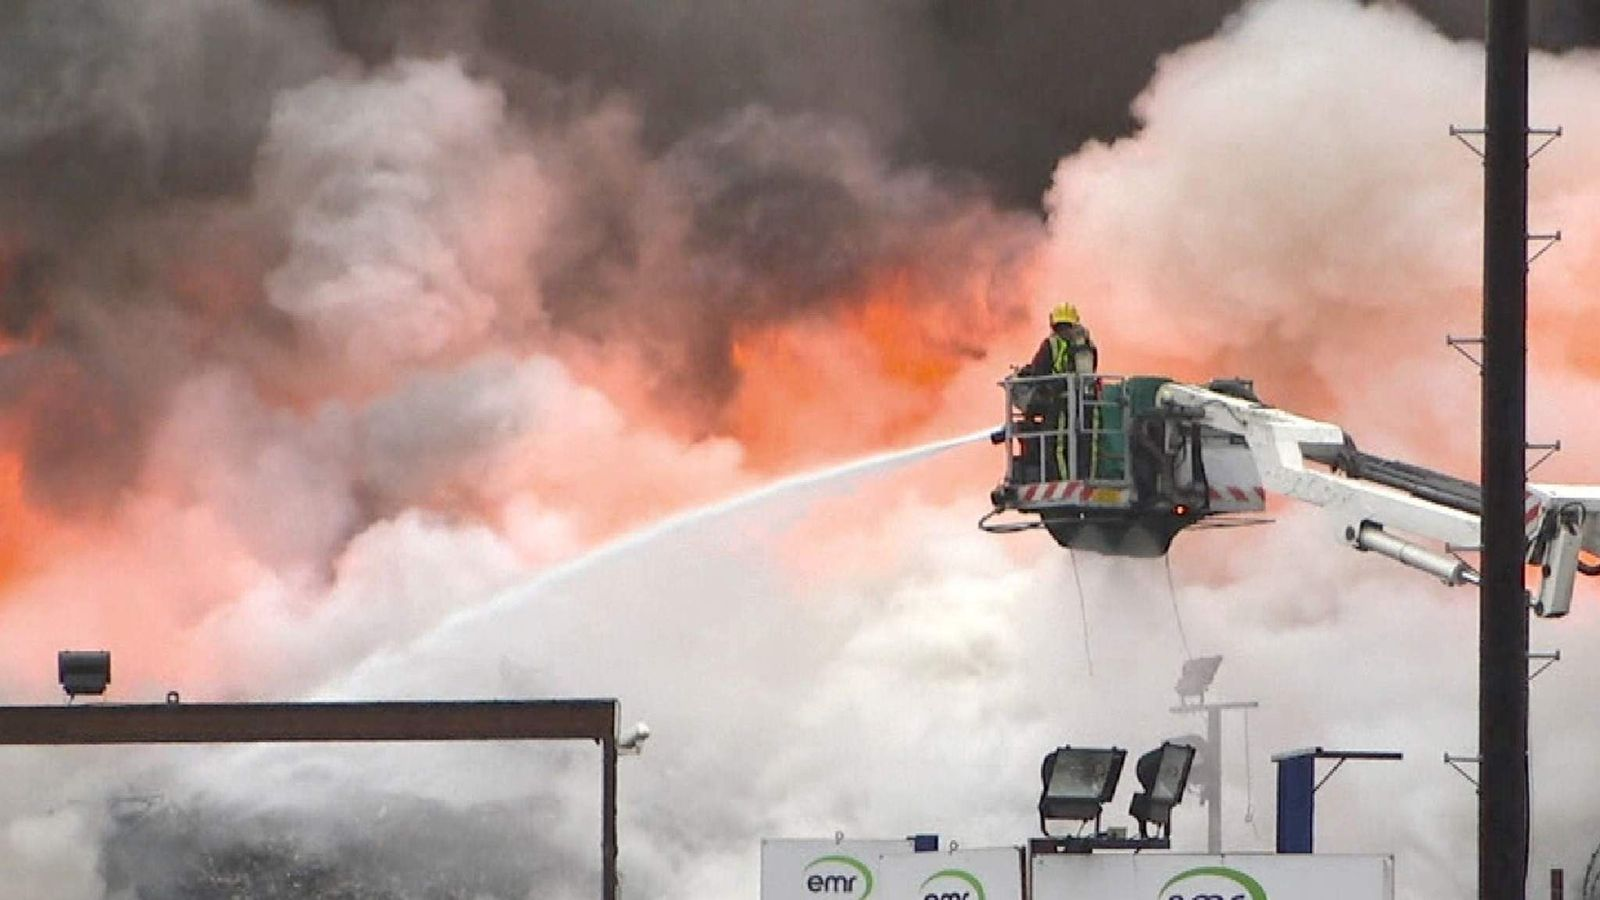 Firefighters tackle blaze at Birmingham recycling centre